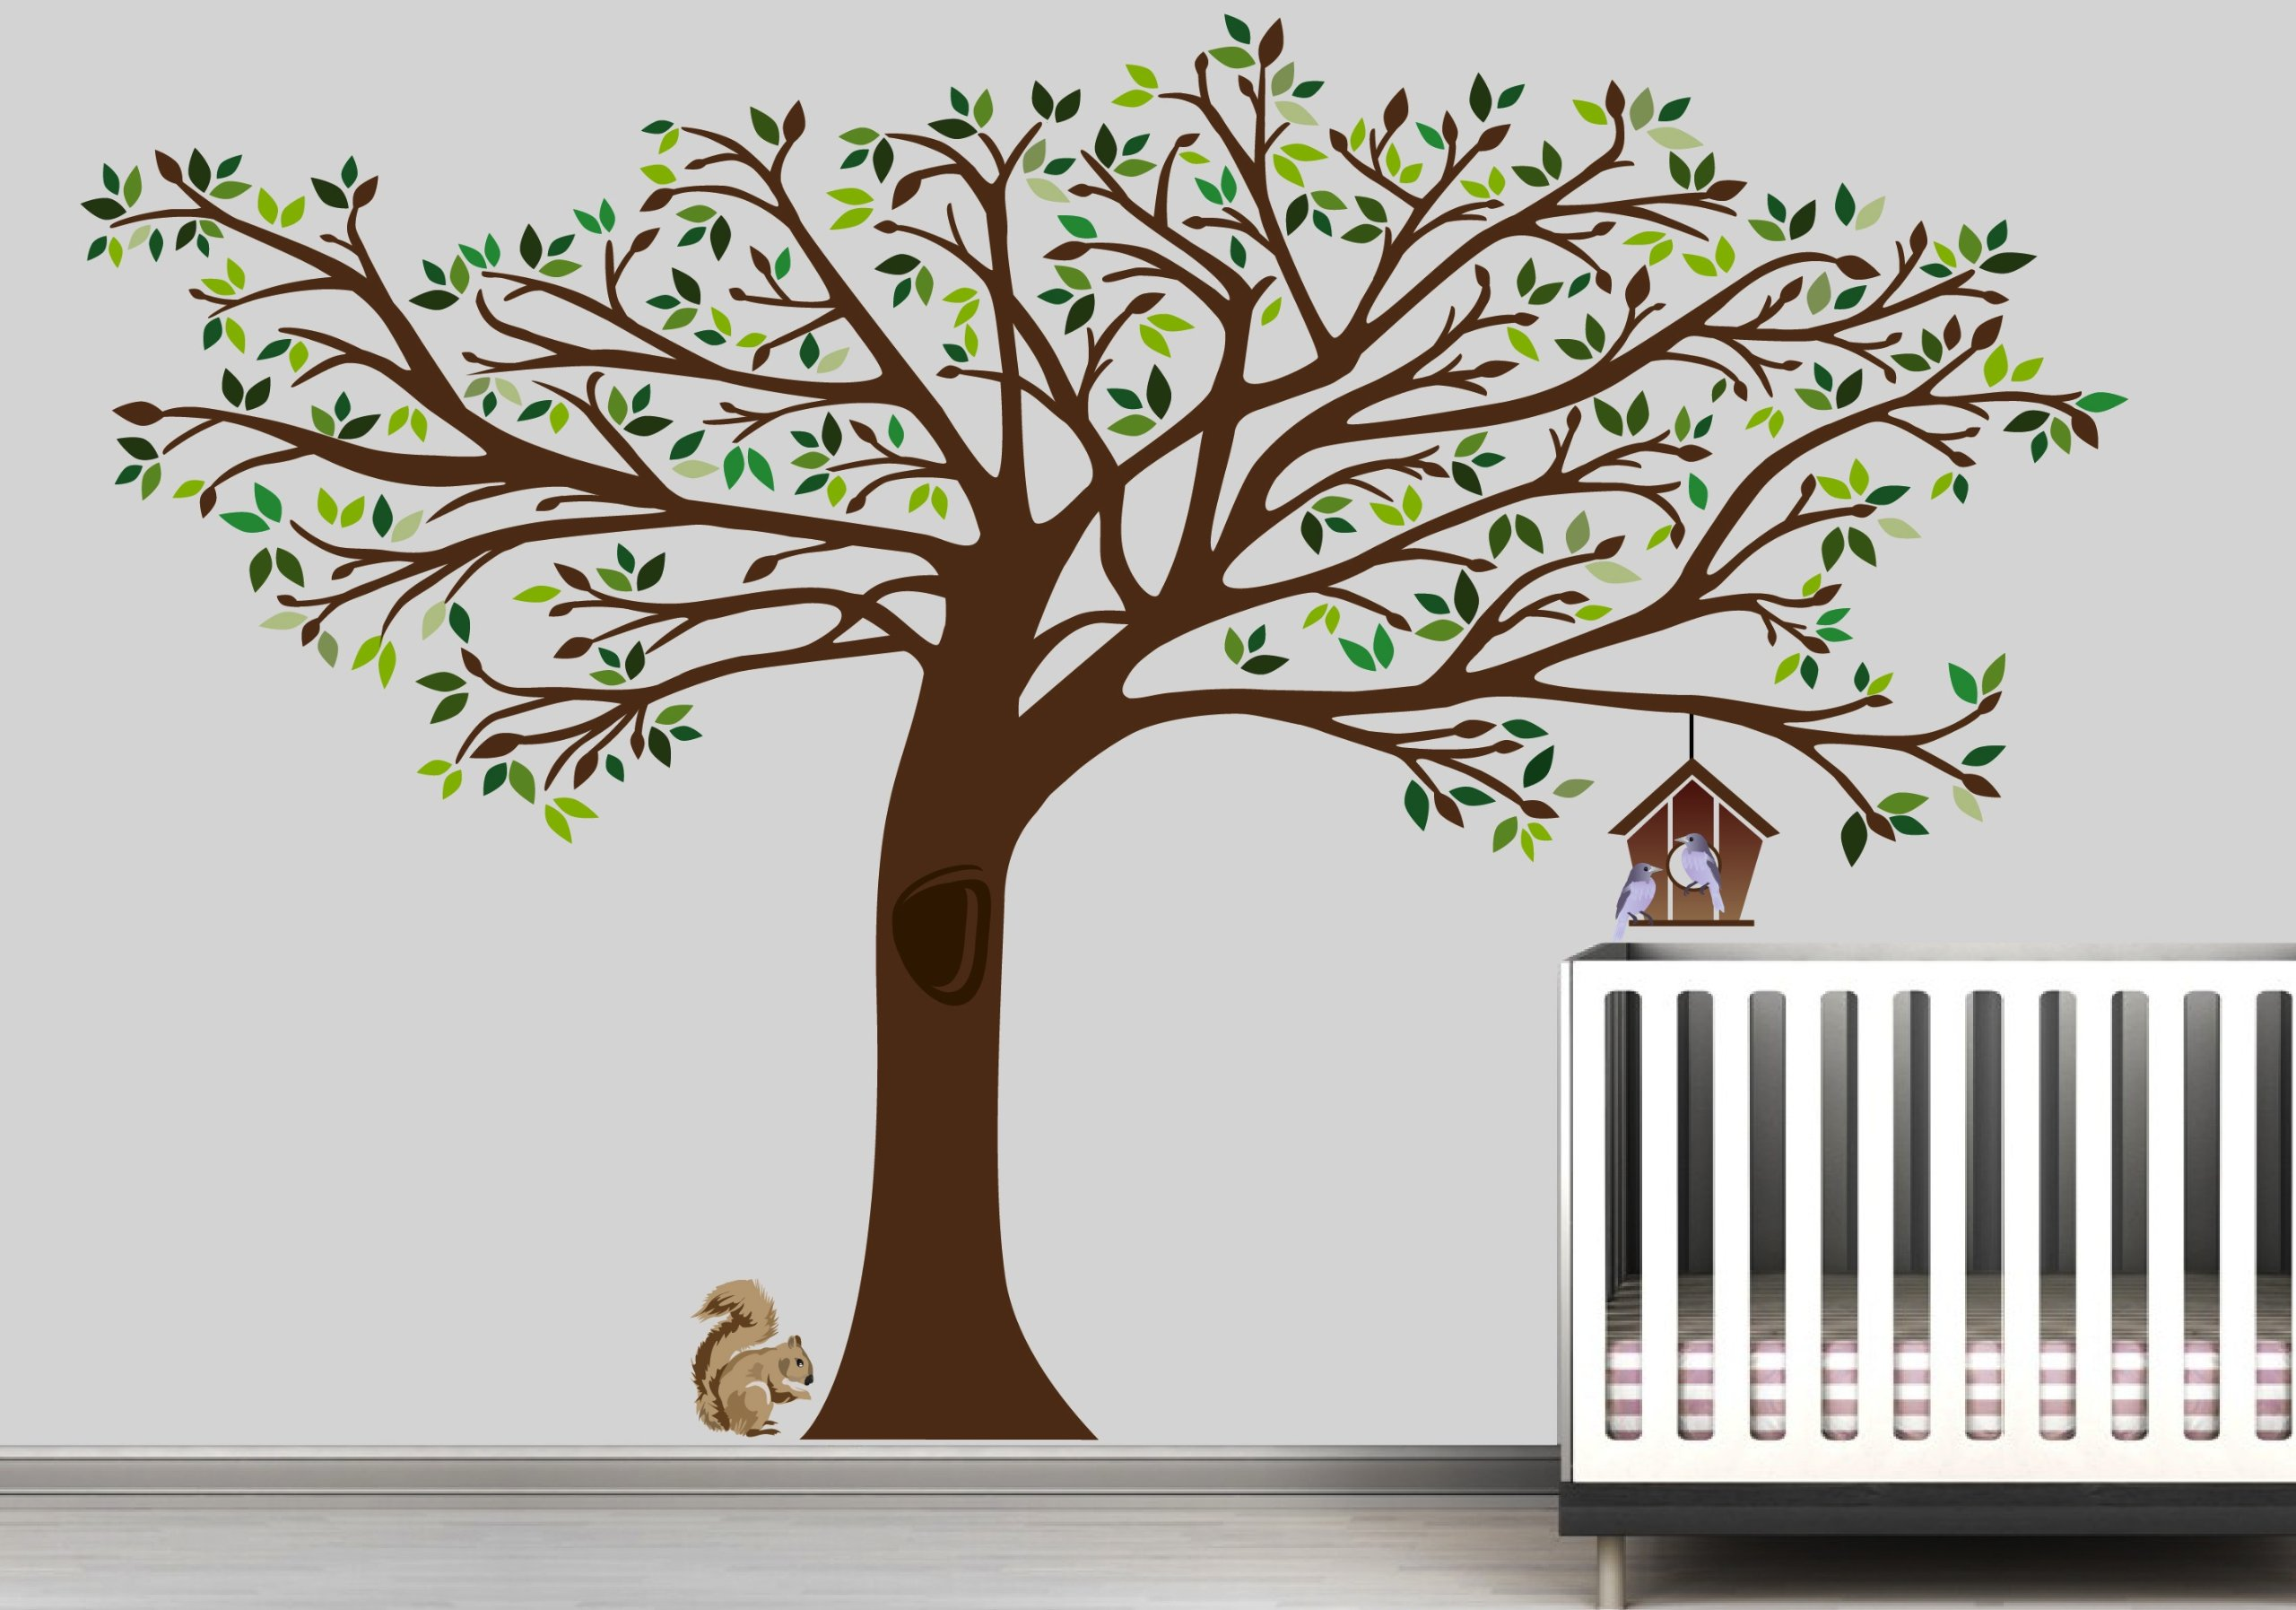 7.5 Ft. Tall X 10 Ft. Wide NEW Large Tree Wall Decal Deco Art Sticker Mural